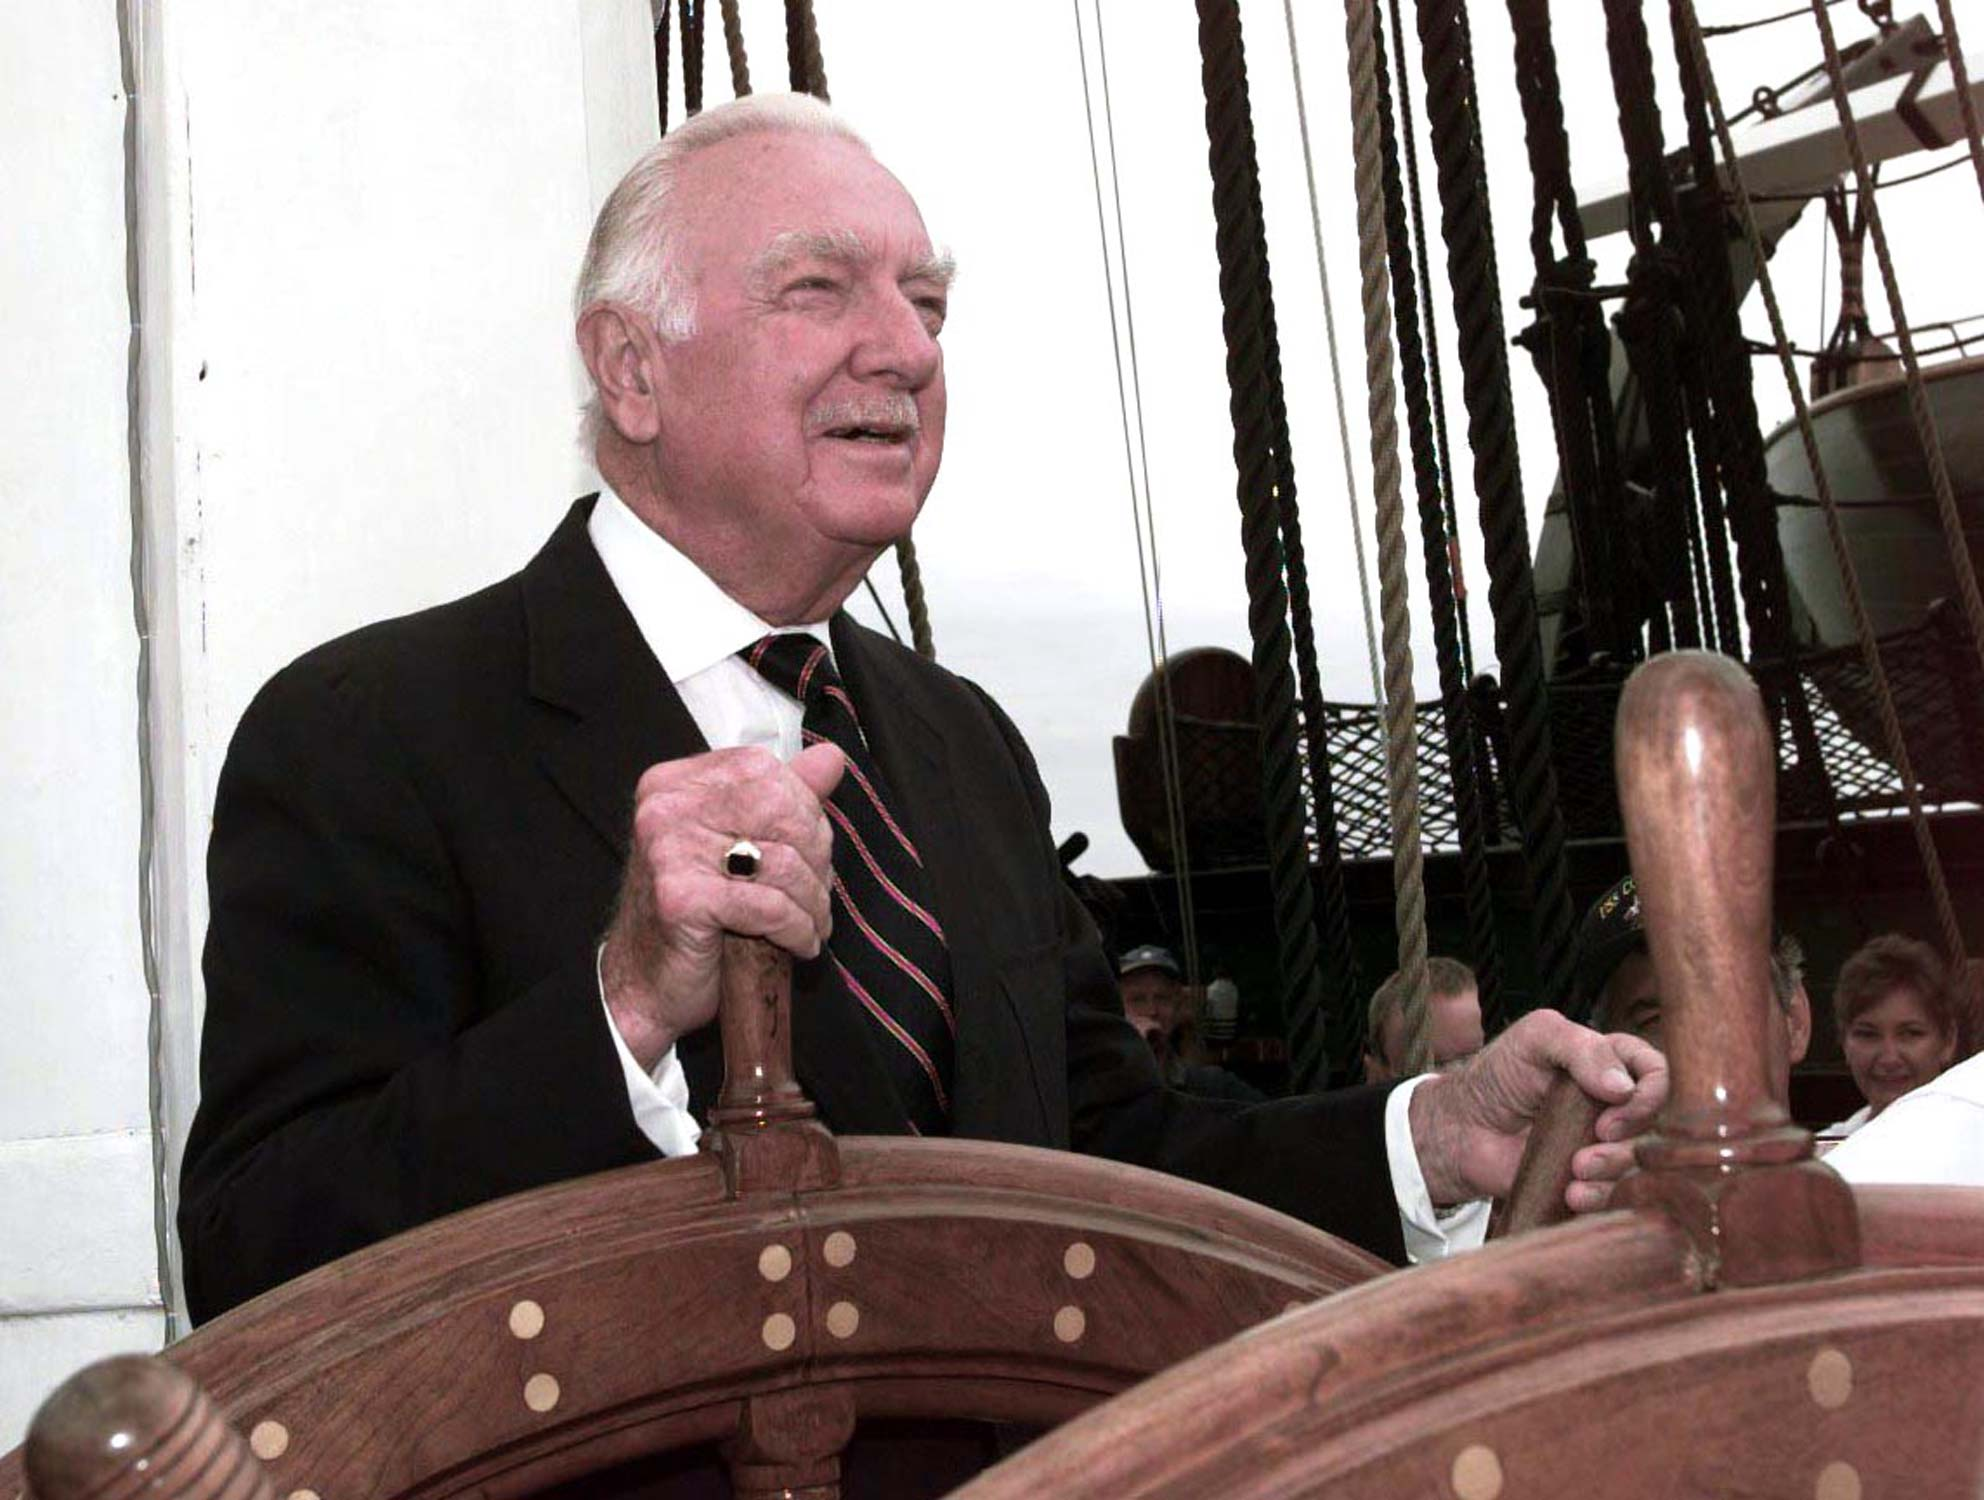 Walter Cronkite takes the helm of Constitution 21 July 1997